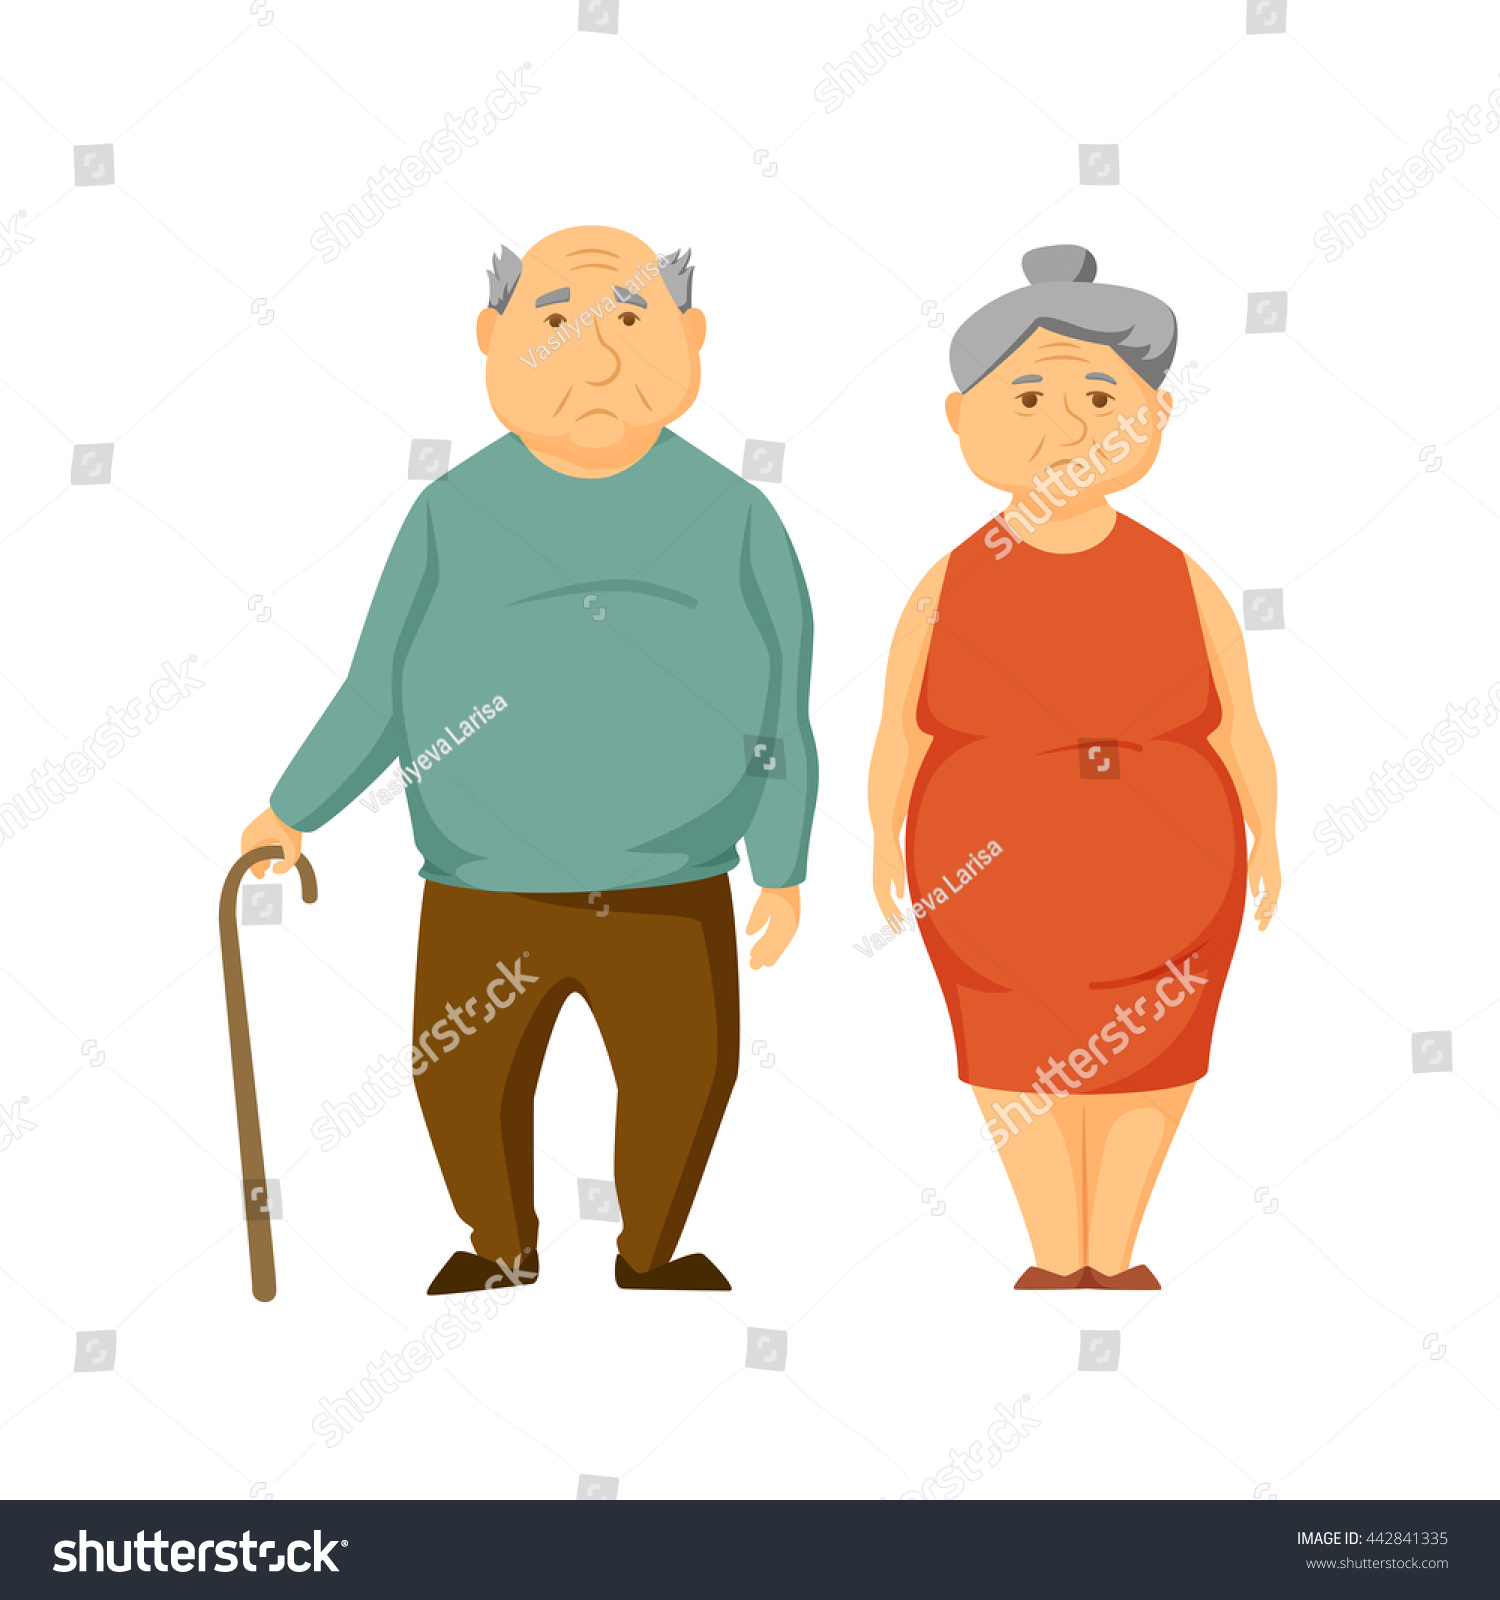 obesity in older women Older men and women have similar rates of obesity older obese adults are somewhat less likely to receive help from a professional caregiver -- 6 percent -- compared to 8 percent for non-obese adults of the same age.